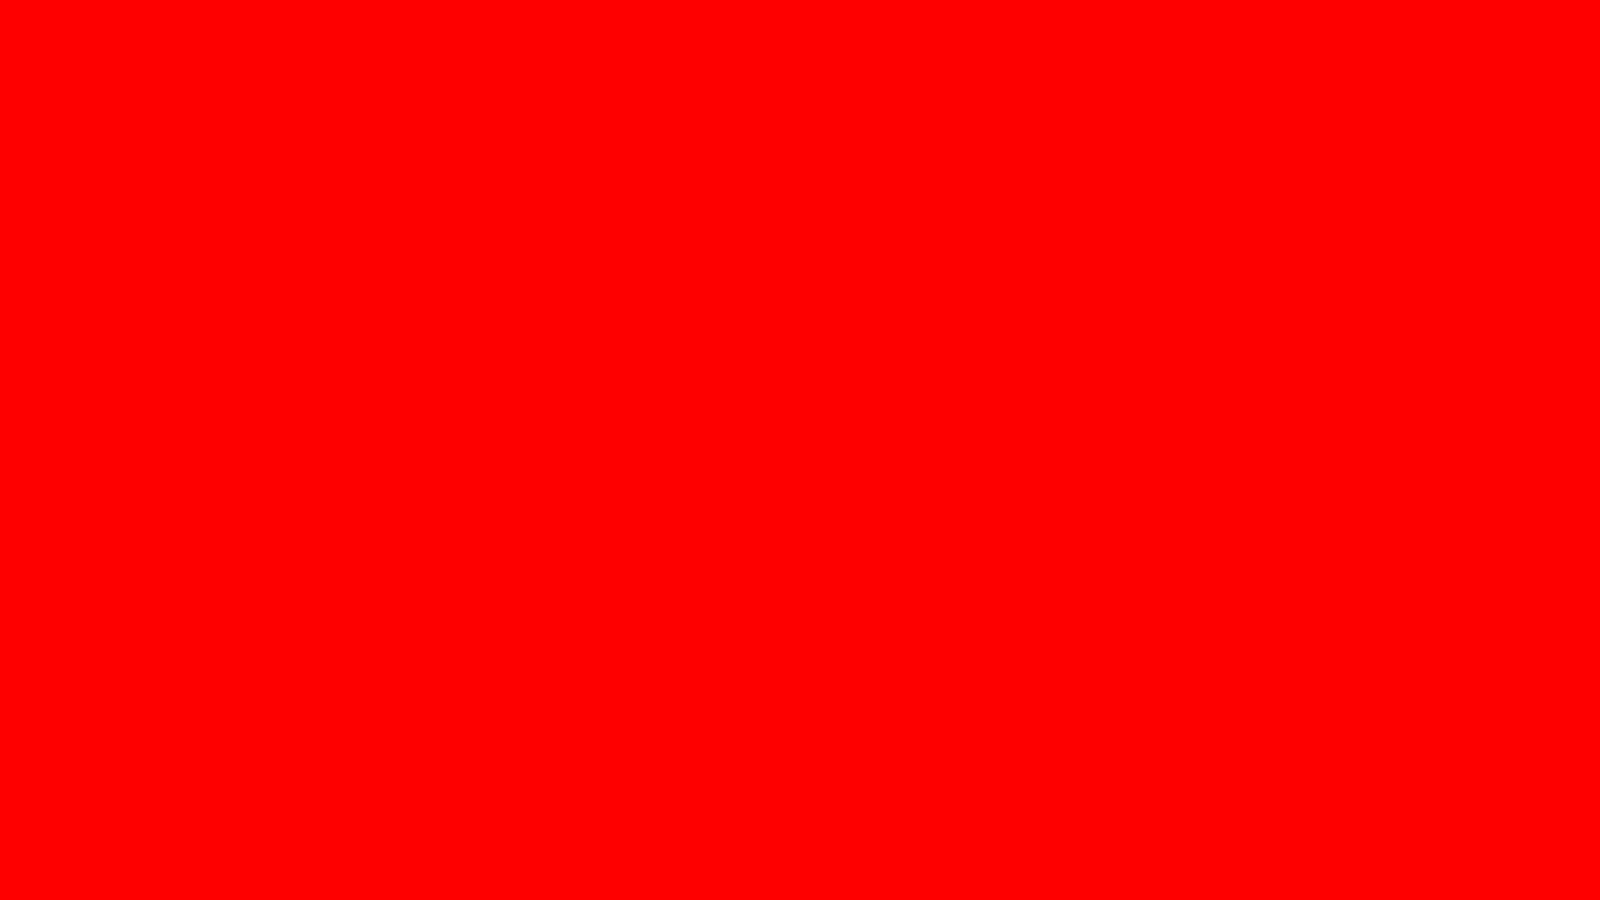 1600x900 Red Solid Color Background